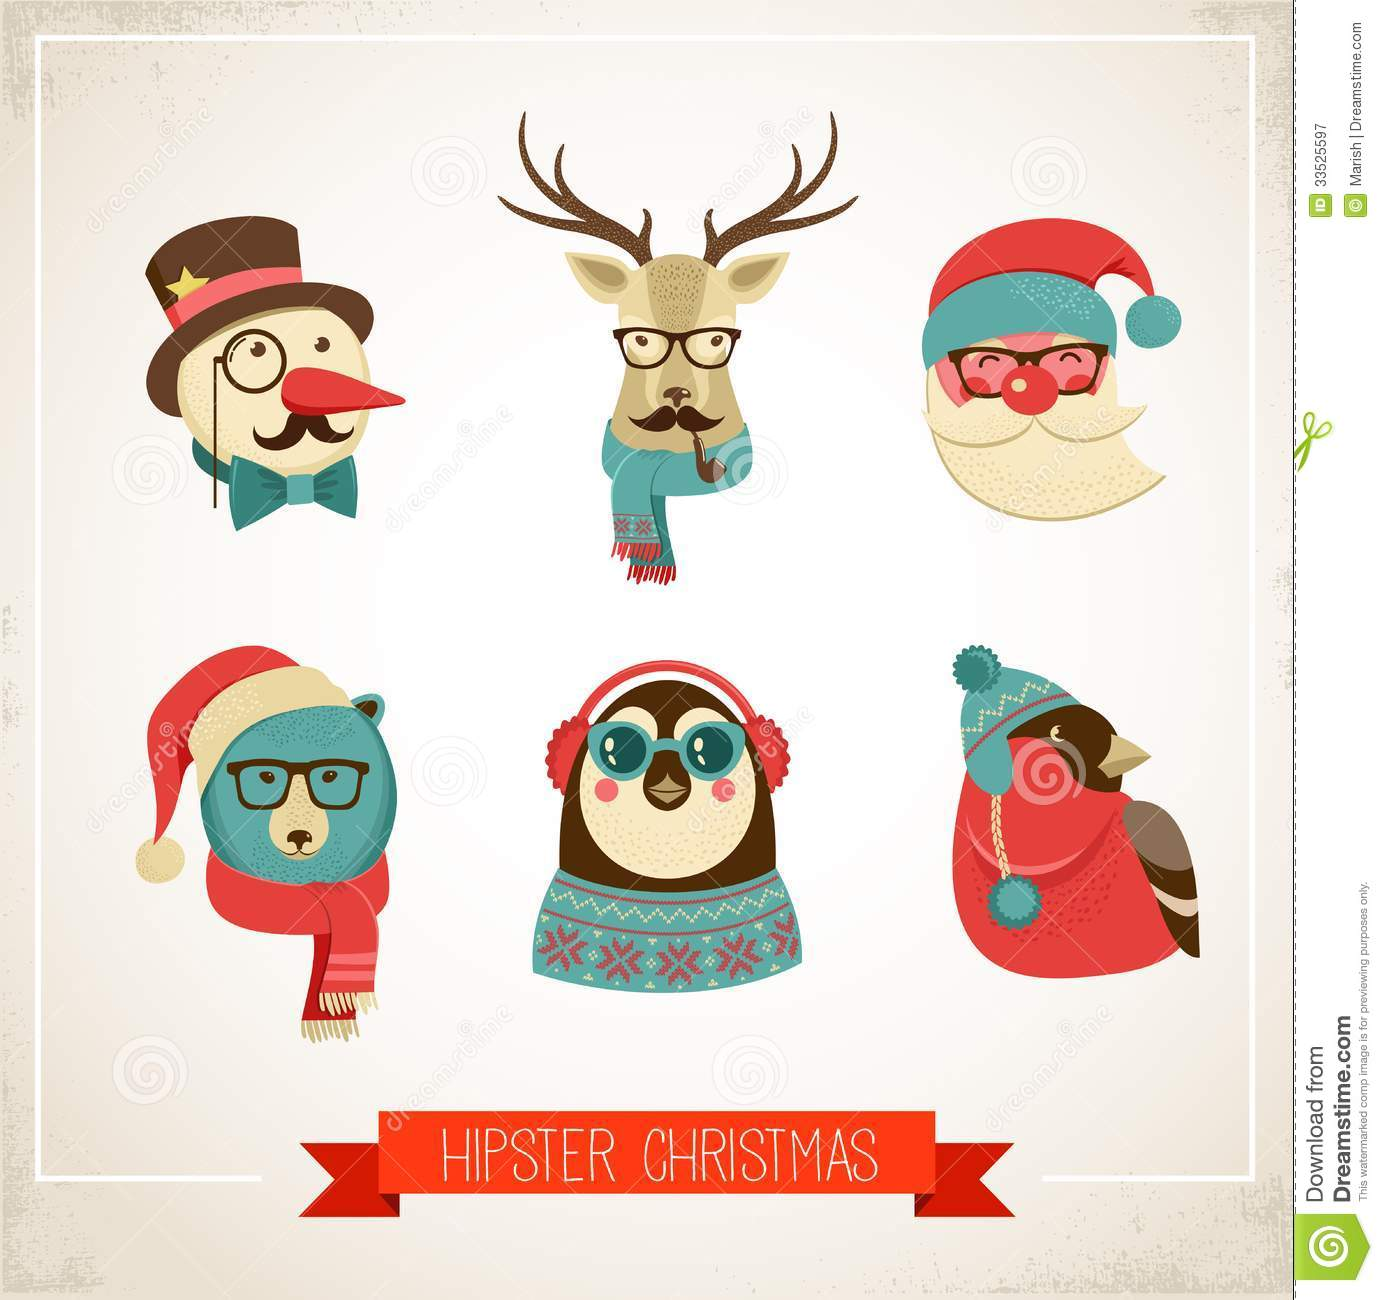 Hipster clipart christmas #4